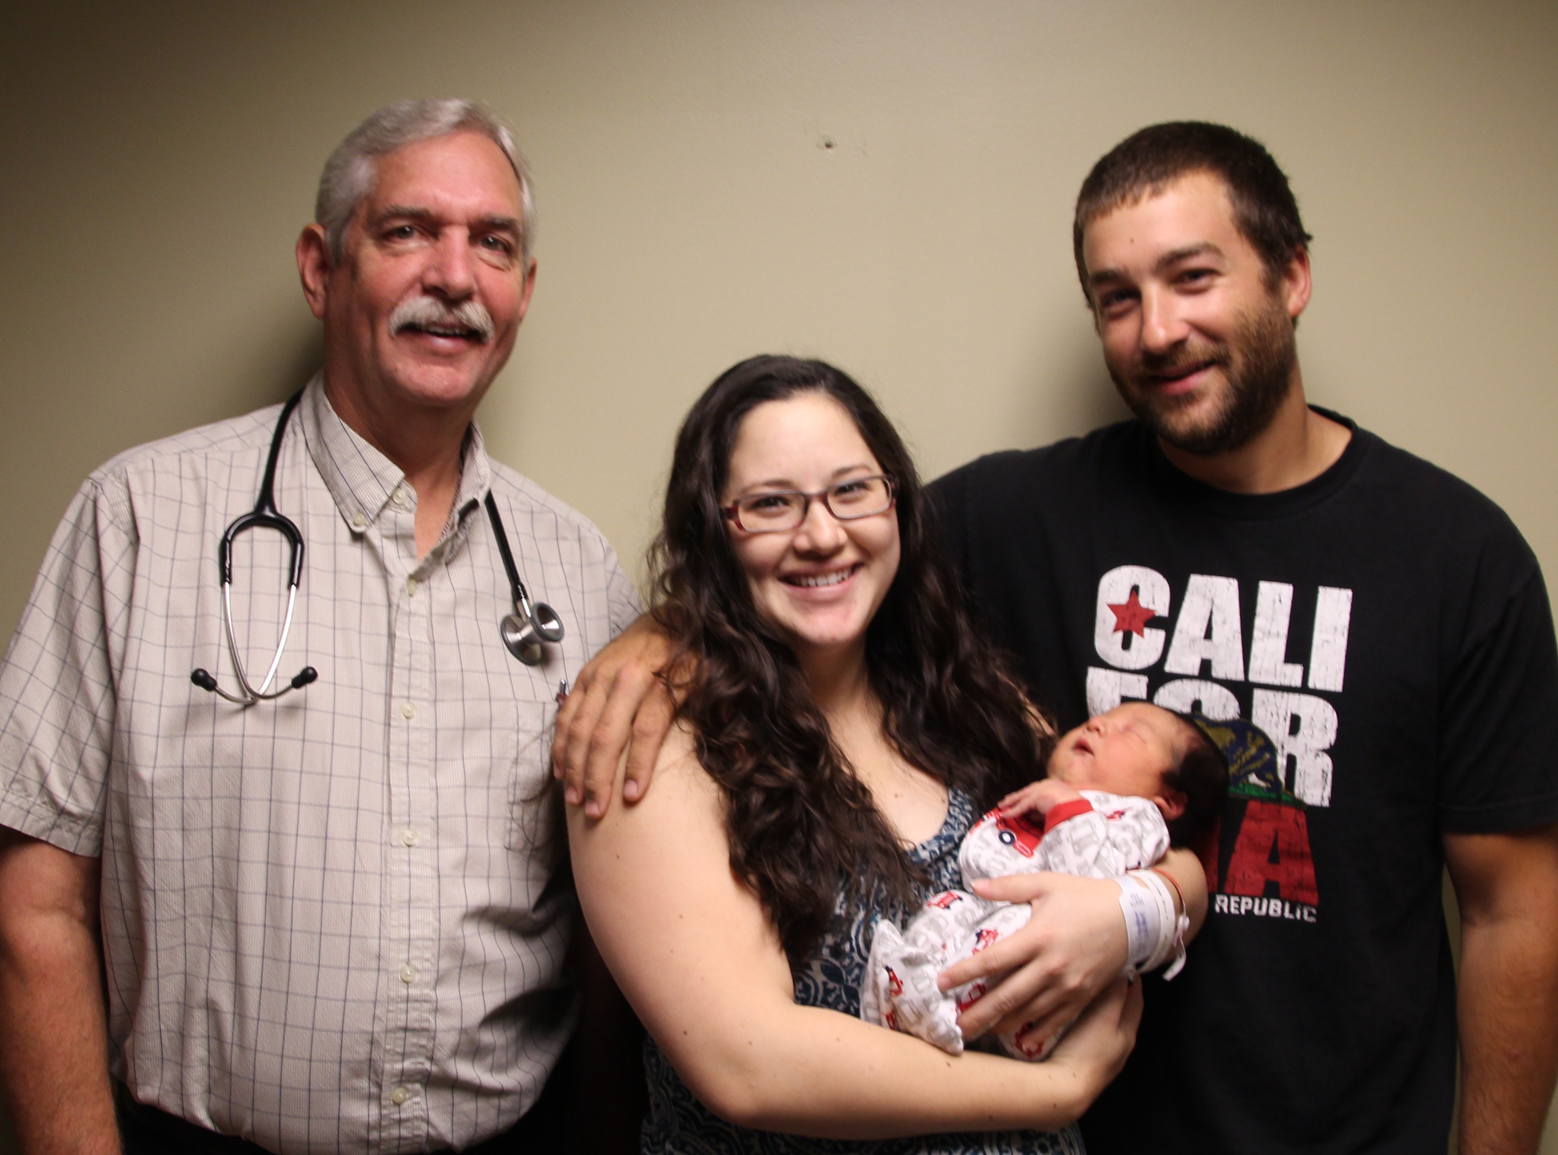 Pictured L to R:  Dr. Mike Whitters with parents Waylinn Rosenbaum and Joe Harrah and their son, Charles Harrah.